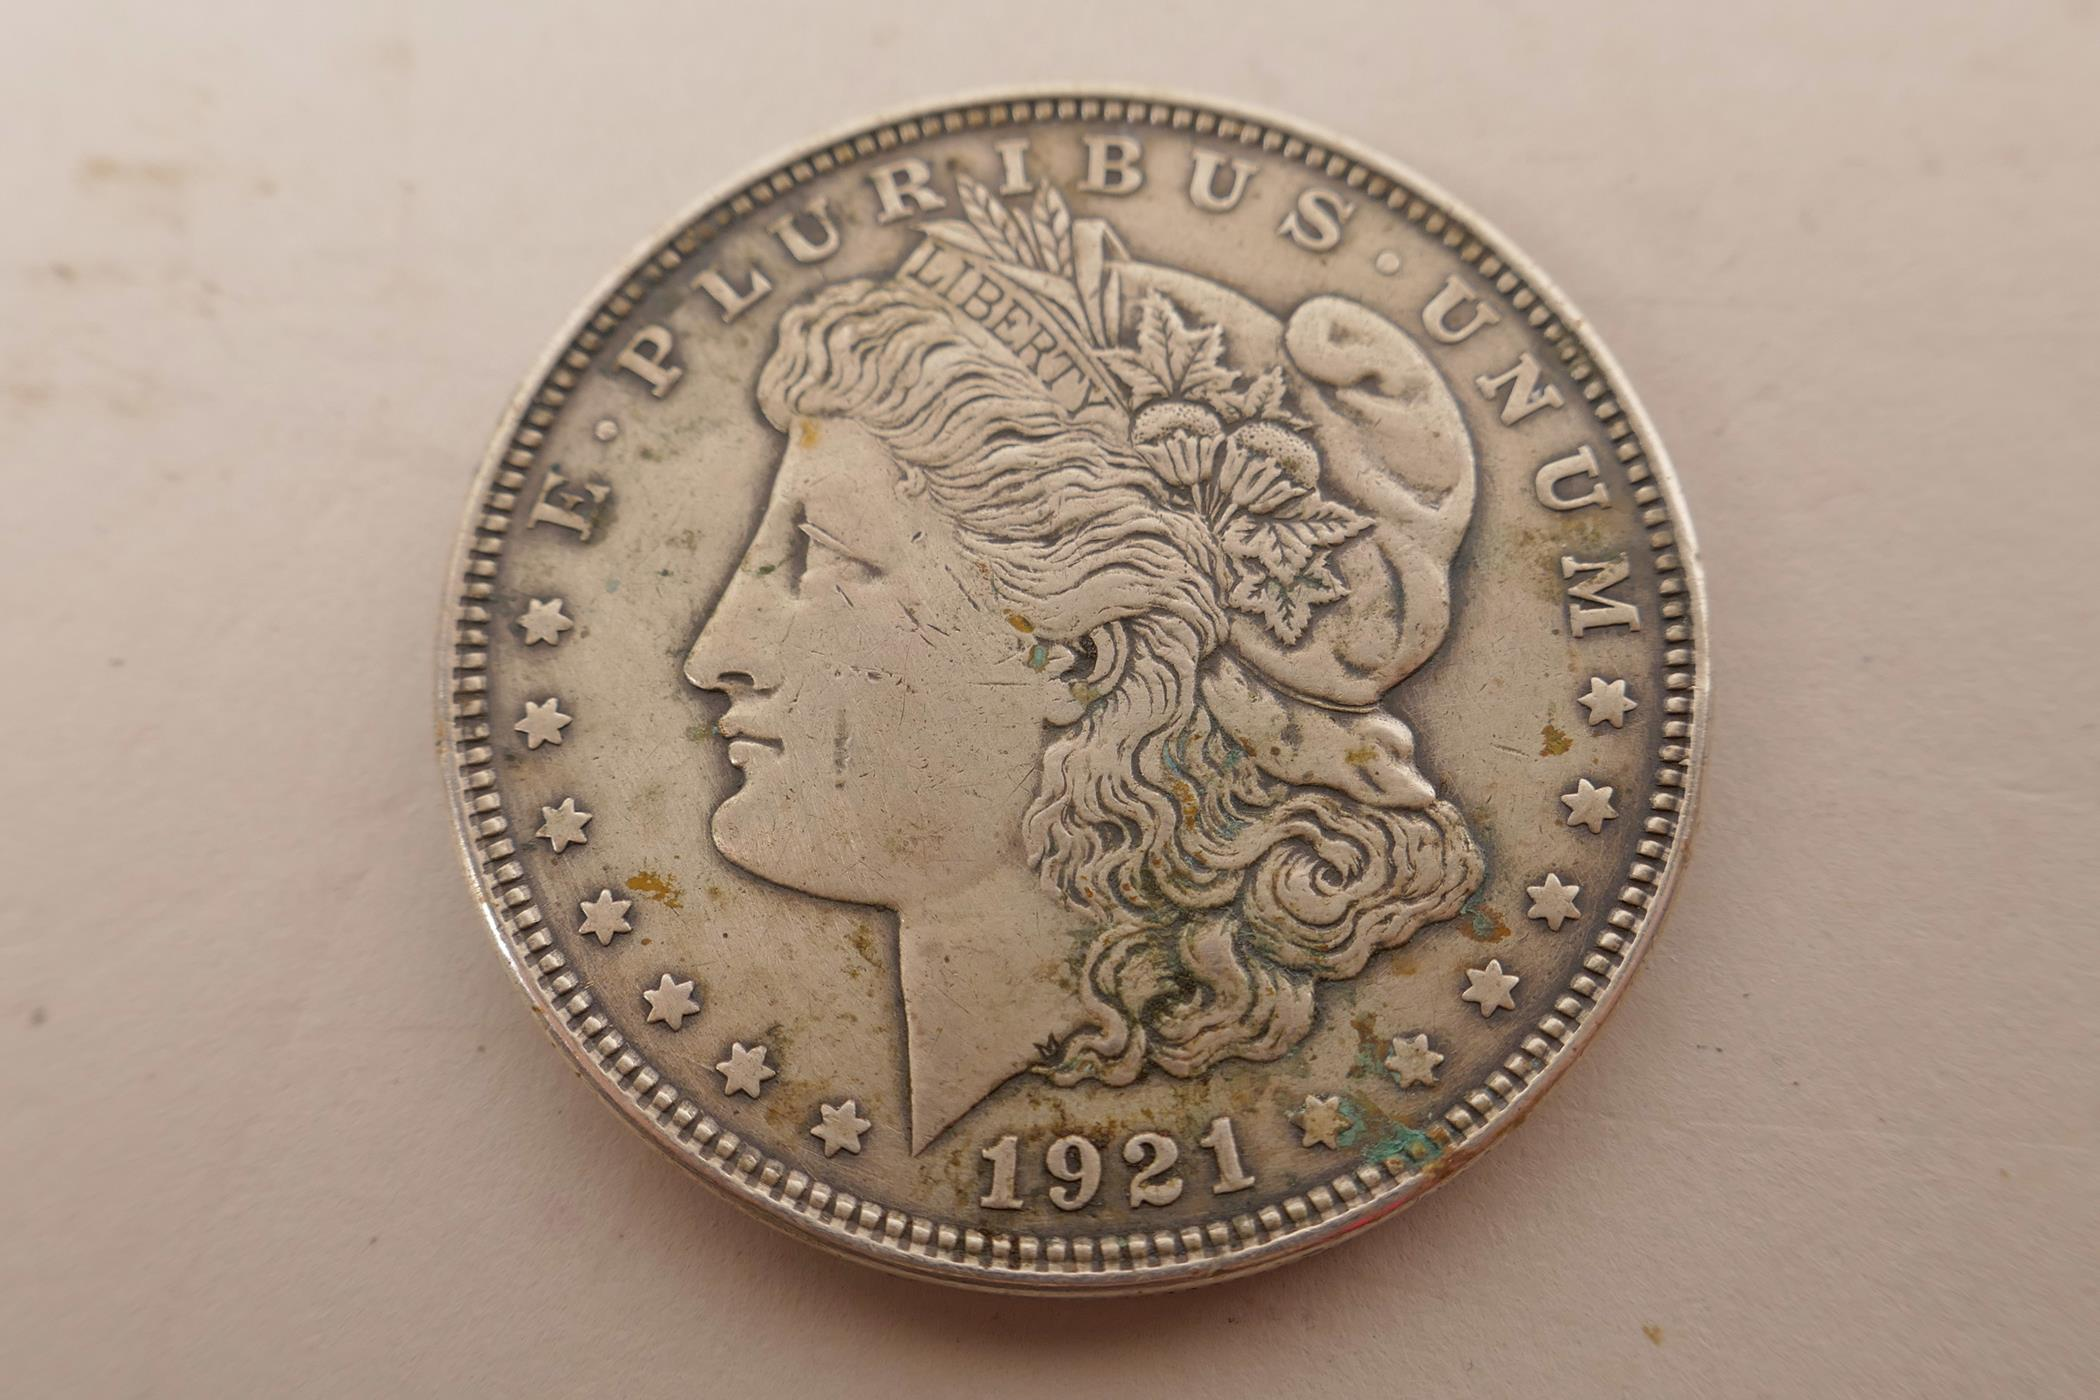 Lot 23 - A USA silver Morgan dollar coin minted in Philadelphia and dated 1921; a USA silver Kennedy 1964